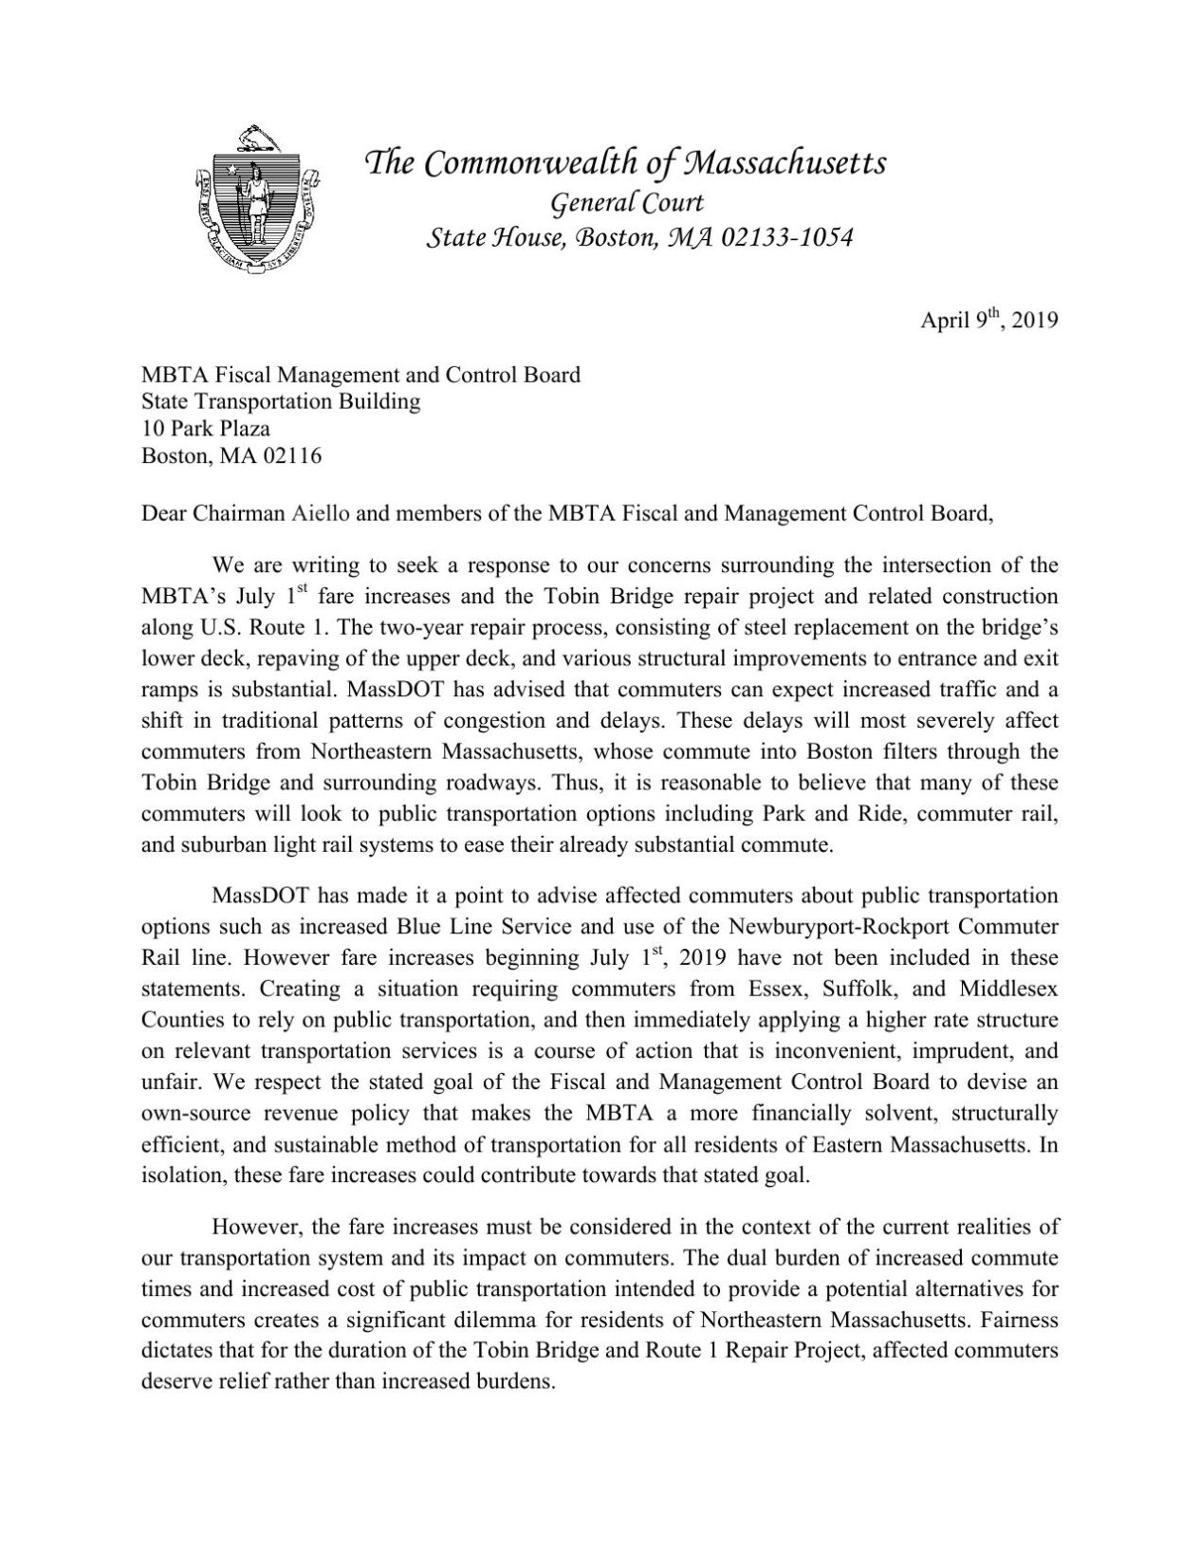 Letter from lawmakers regarding MBTA fare hikes